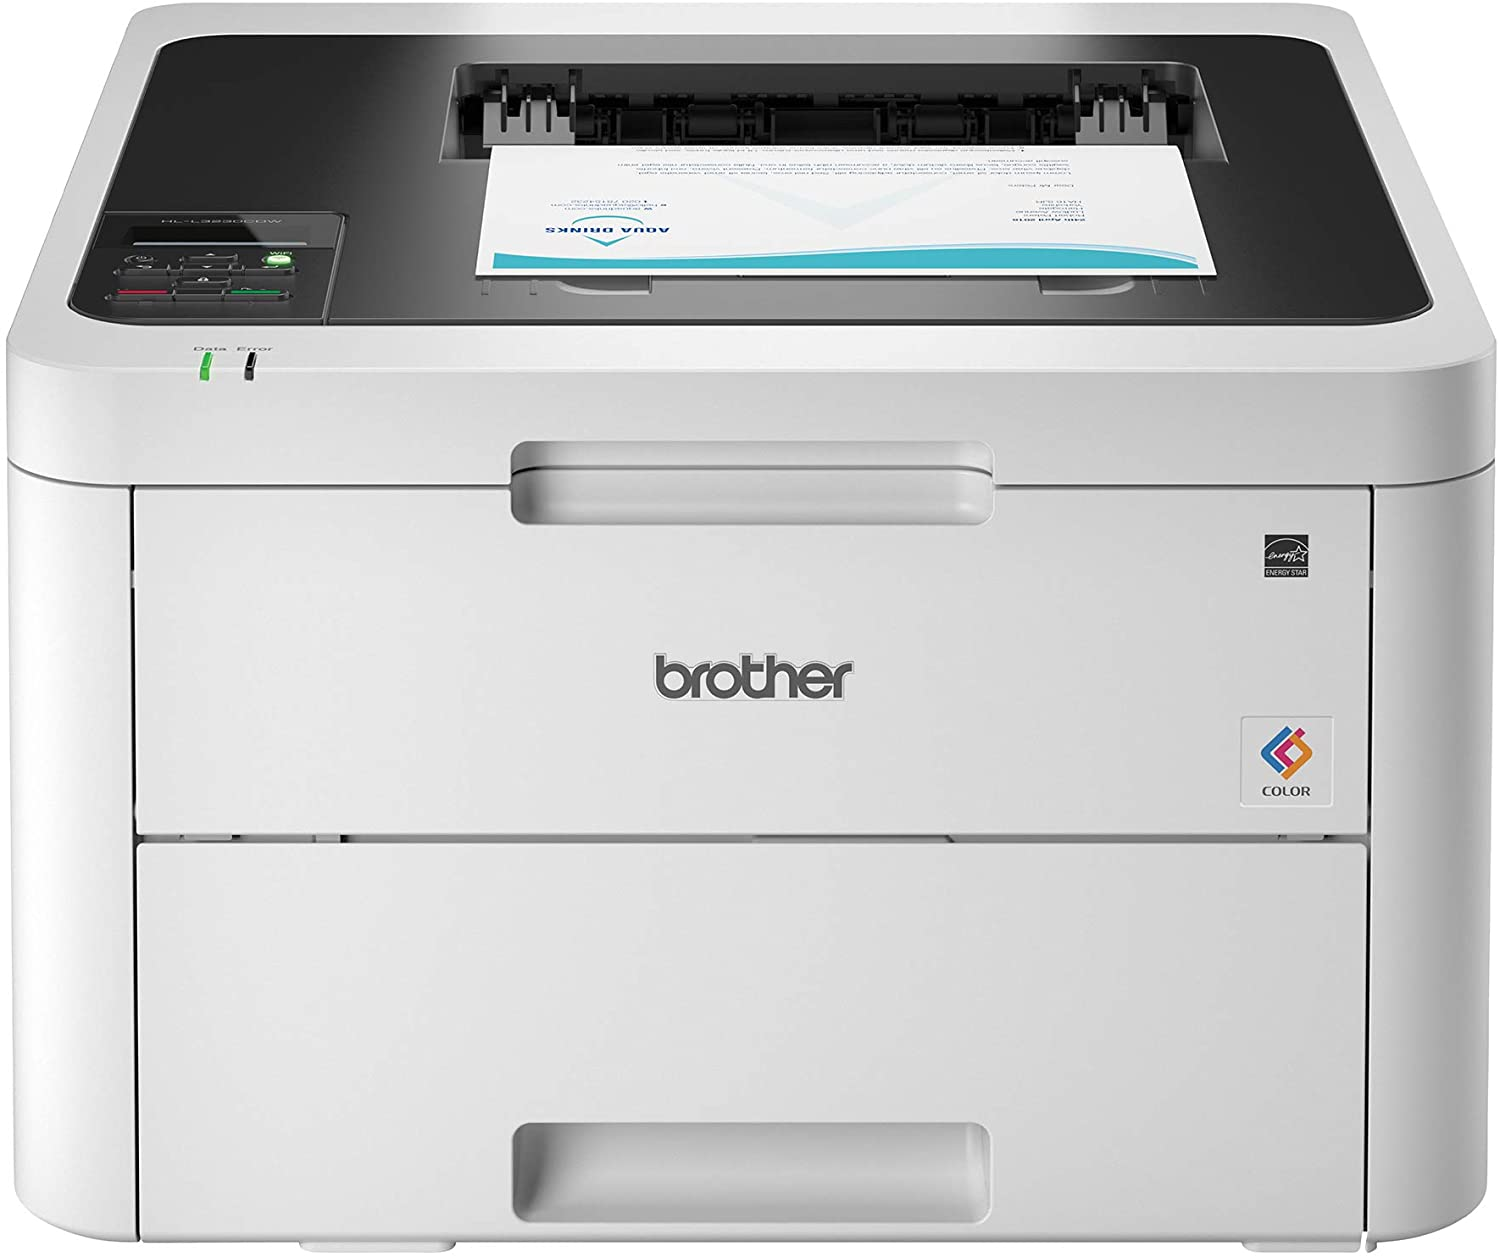 Brother HL-L3230CDW Compact Digital Color Printer